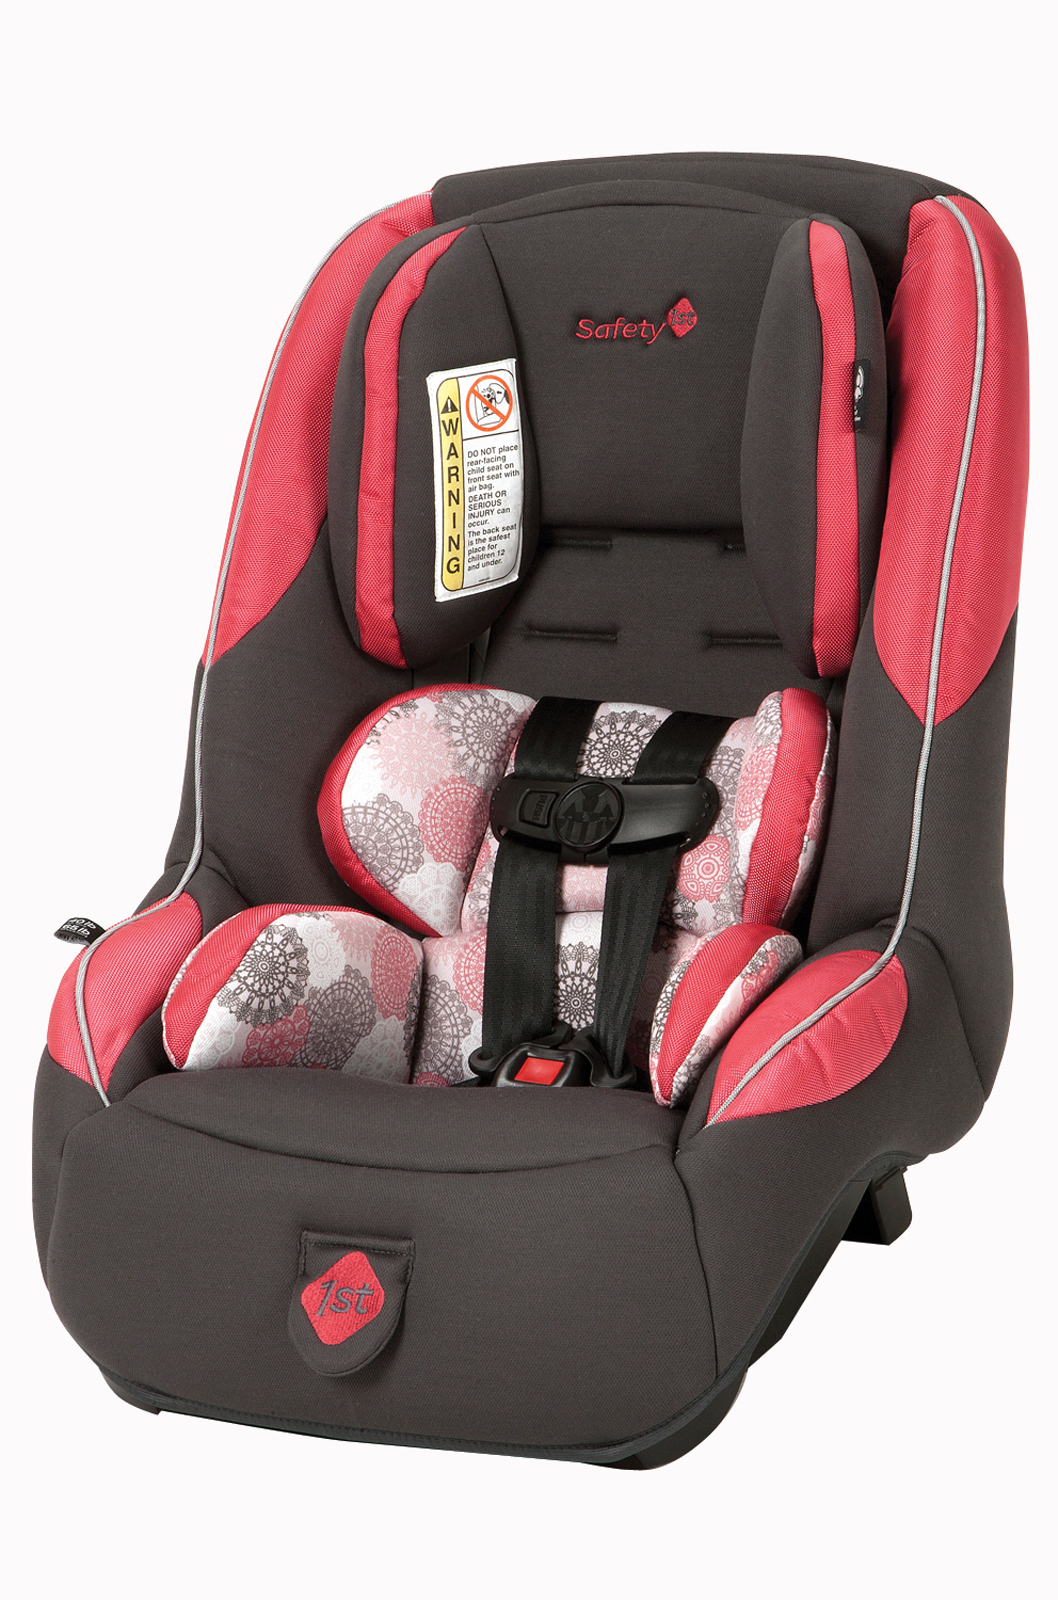 safety 1st guide 65 convertible car seat chateau. Black Bedroom Furniture Sets. Home Design Ideas